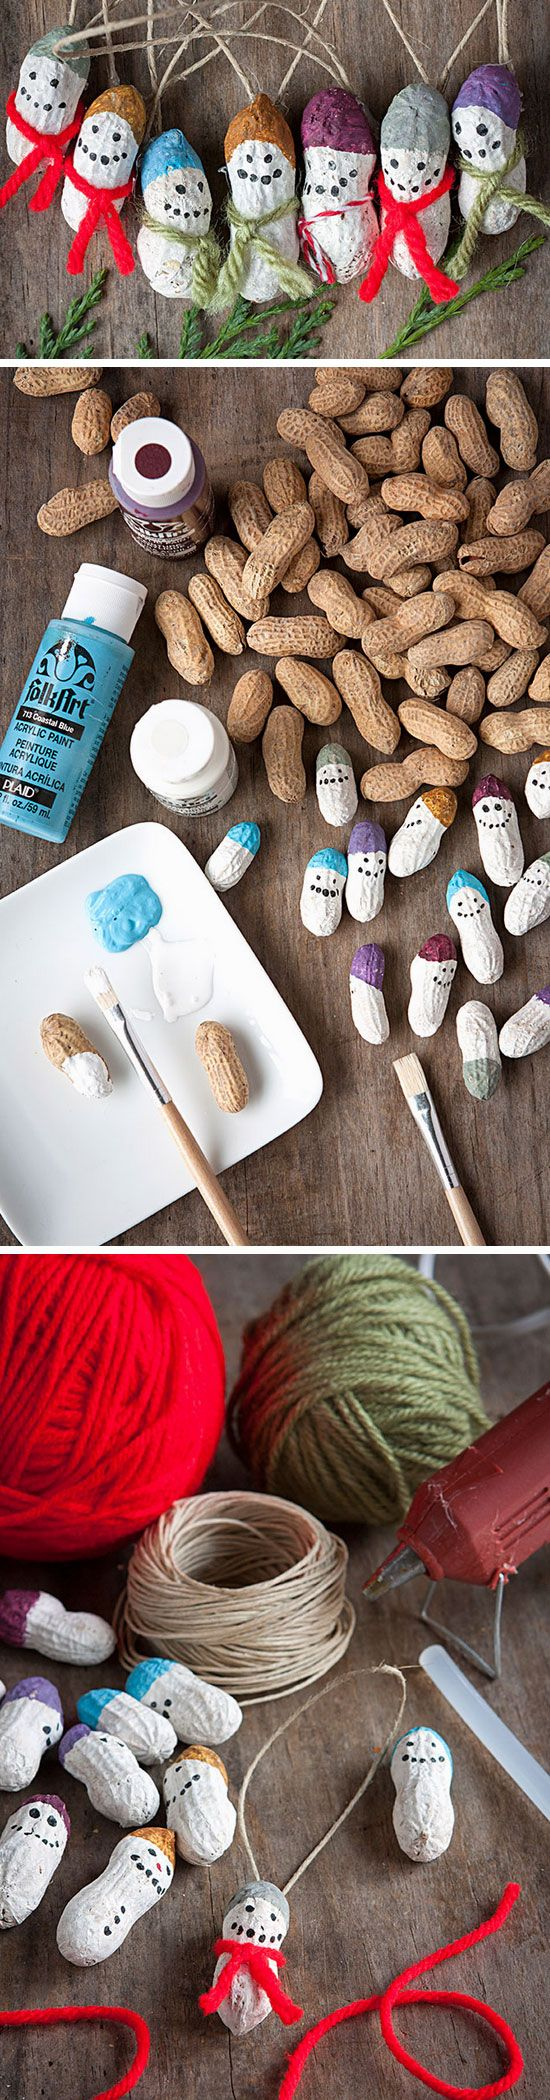 Snowmen christmas ornaments - 25 Diy Christmas Crafts For Kids To Make This Holiday Season